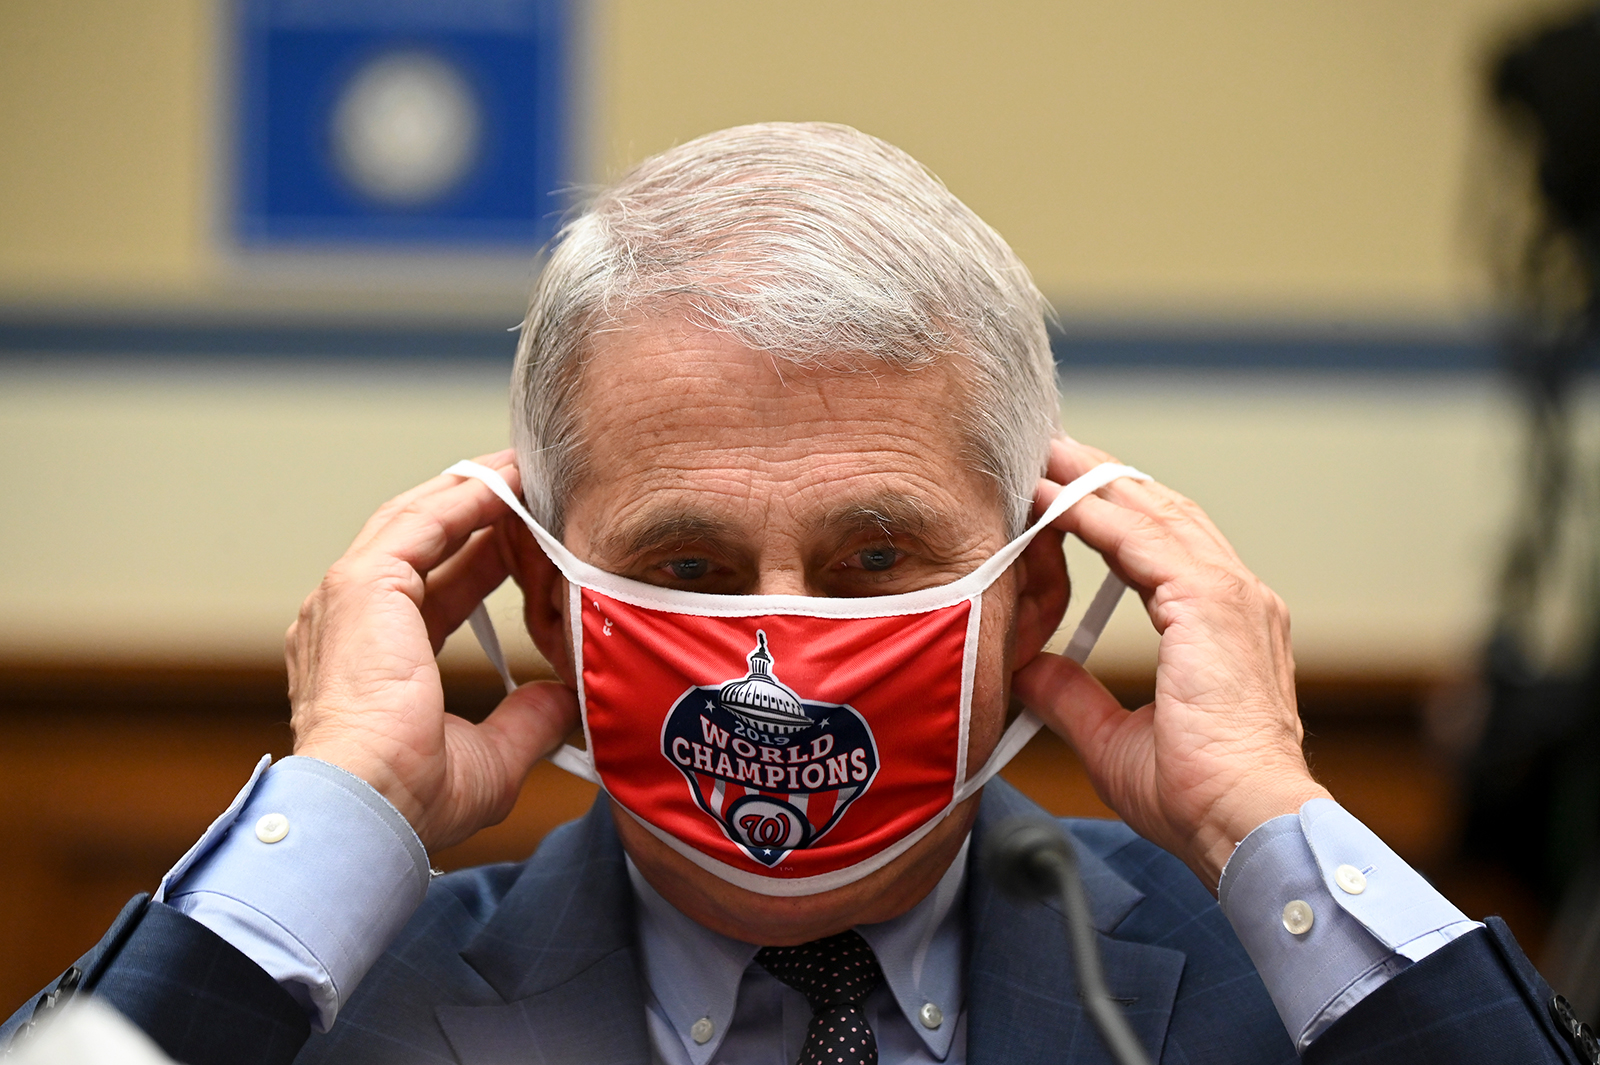 Anthony Fauci, director of the National Institute of Allergy and Infectious Diseases, removes his Washington Nationals protective mask during a House Select Subcommittee on the Coronavirus Crisis hearing on July 31 in Washington.